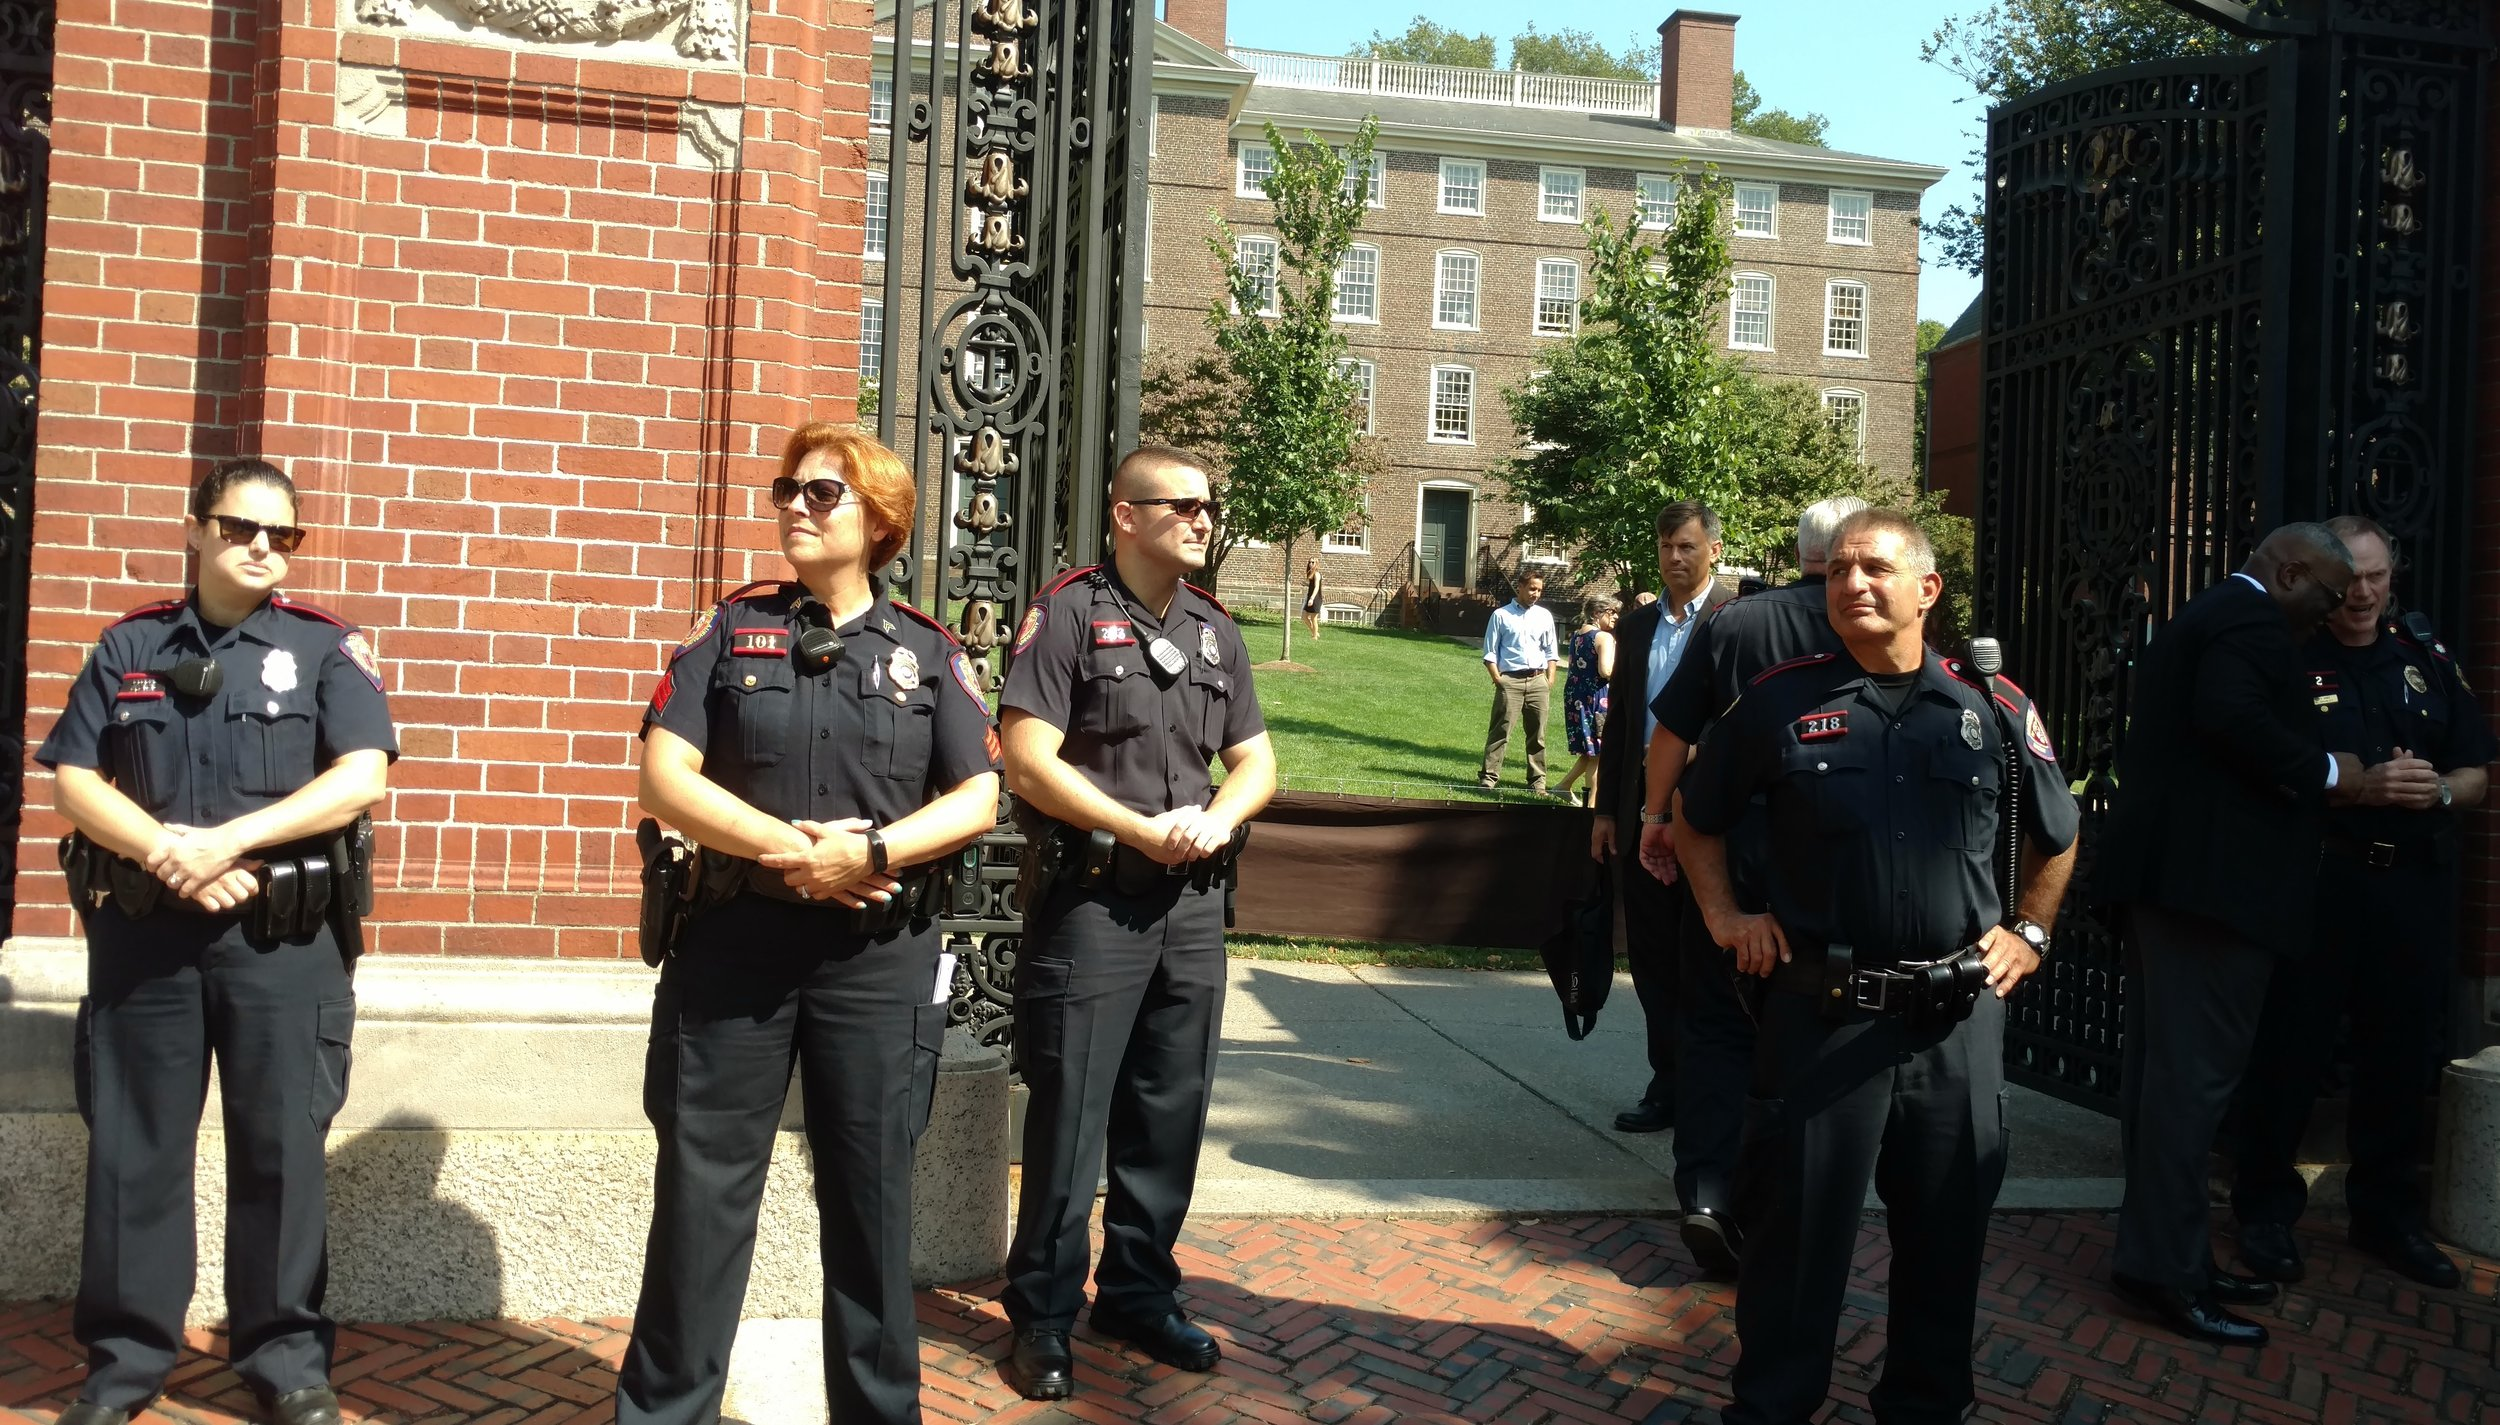 Brown University security at the Van Wickle Gates.